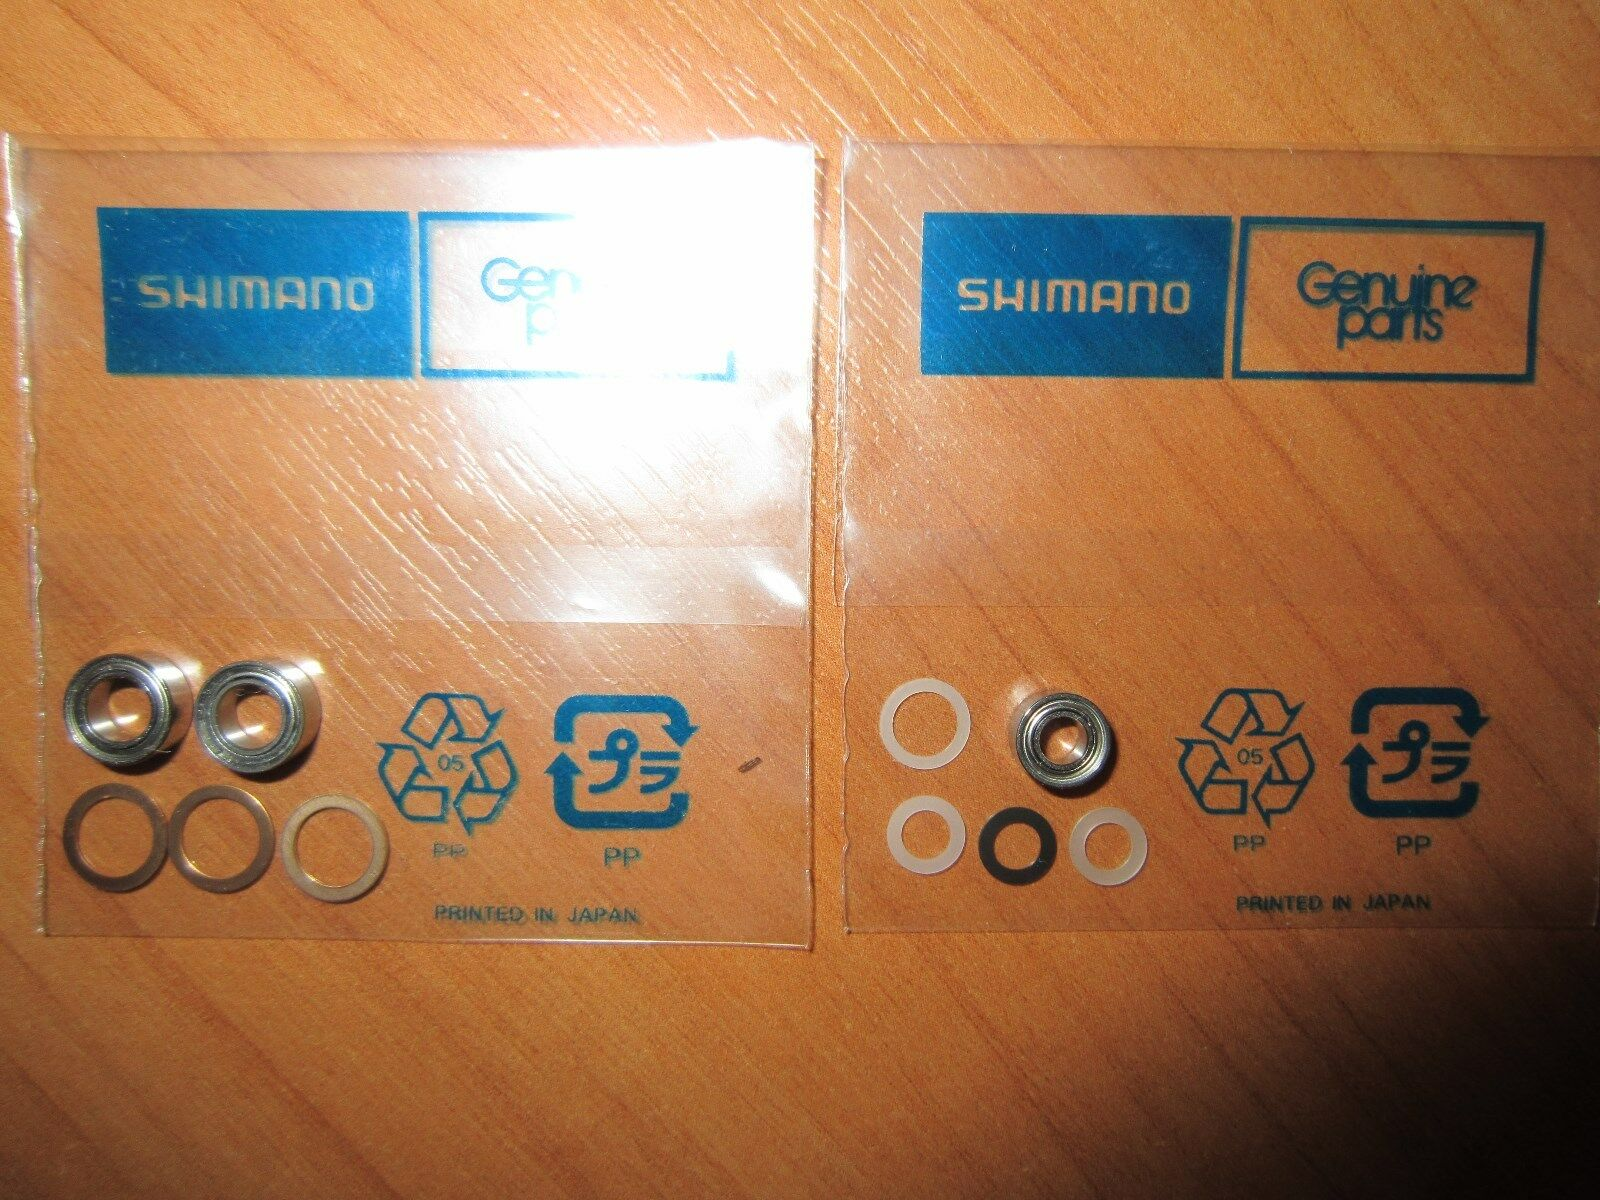 Shimano Ultegra 2500 C3000  4000 1000 Worm Shaft Handle Knob 3 Ball Bearing Kit  the best after-sale service